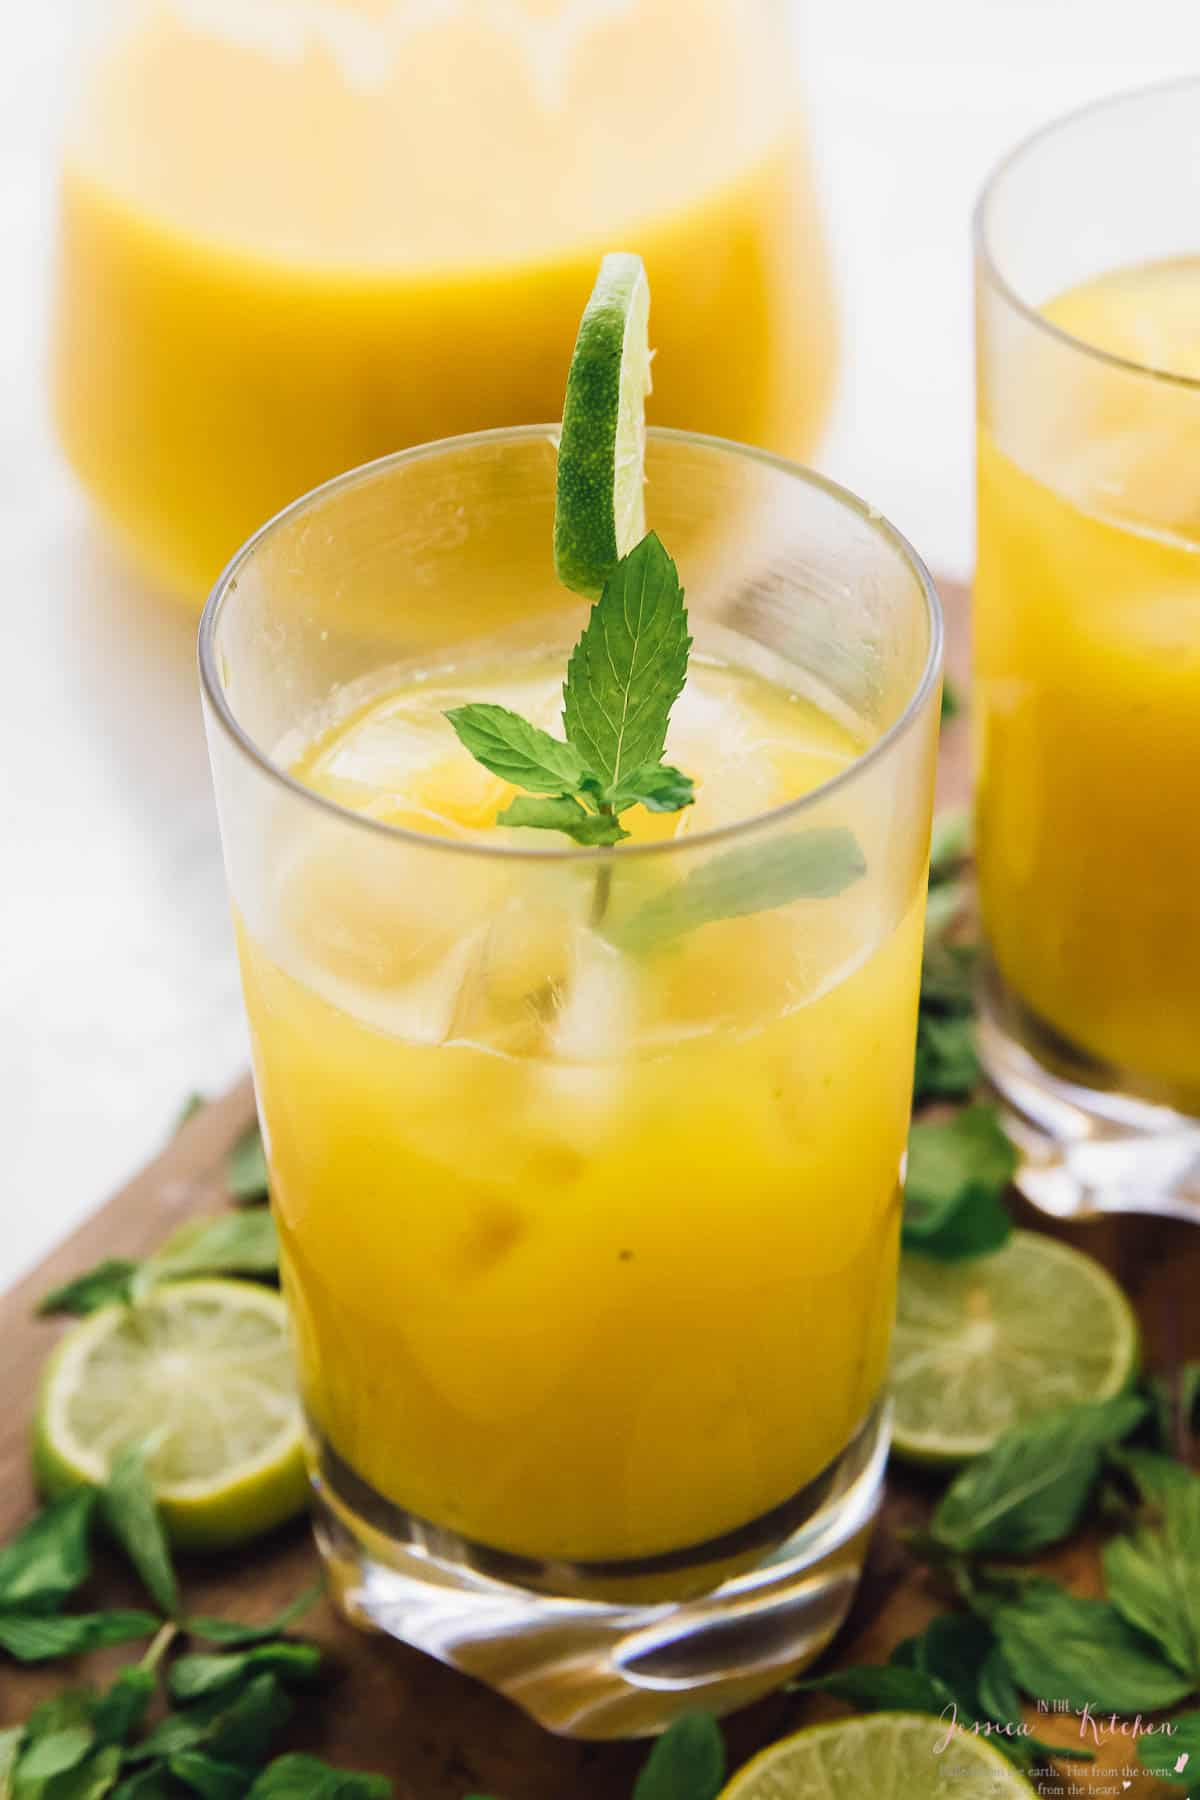 A mango mojito in a glass, garnished with mint and lime.